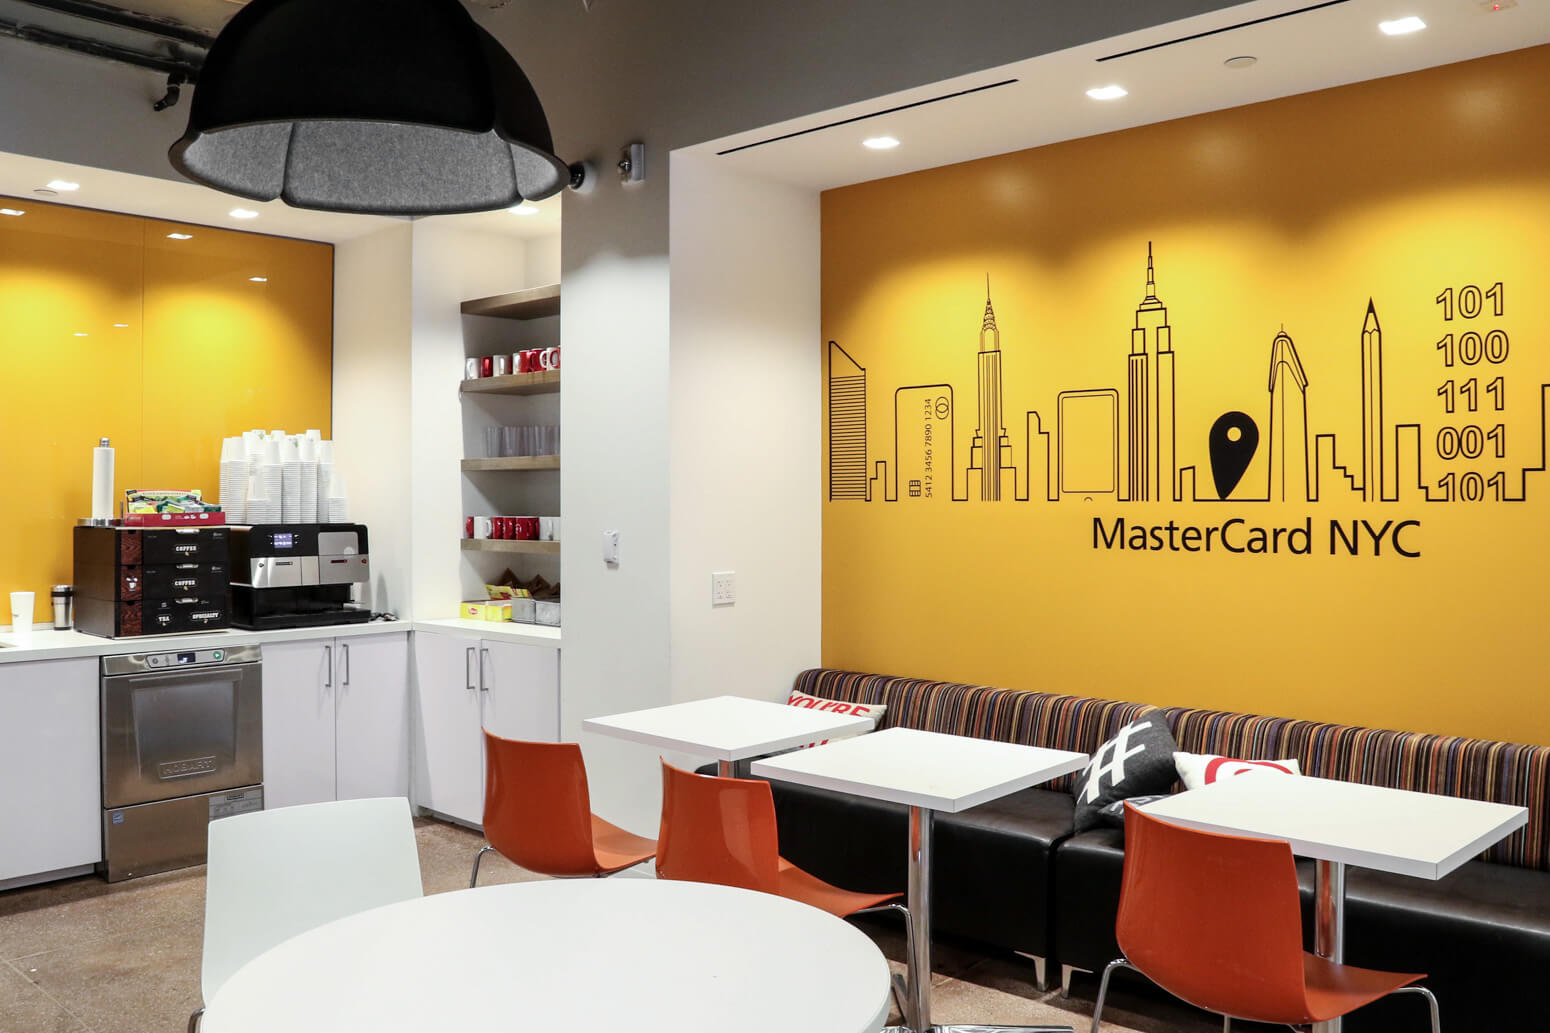 Mastercard NYC Office Killer Spaces-11